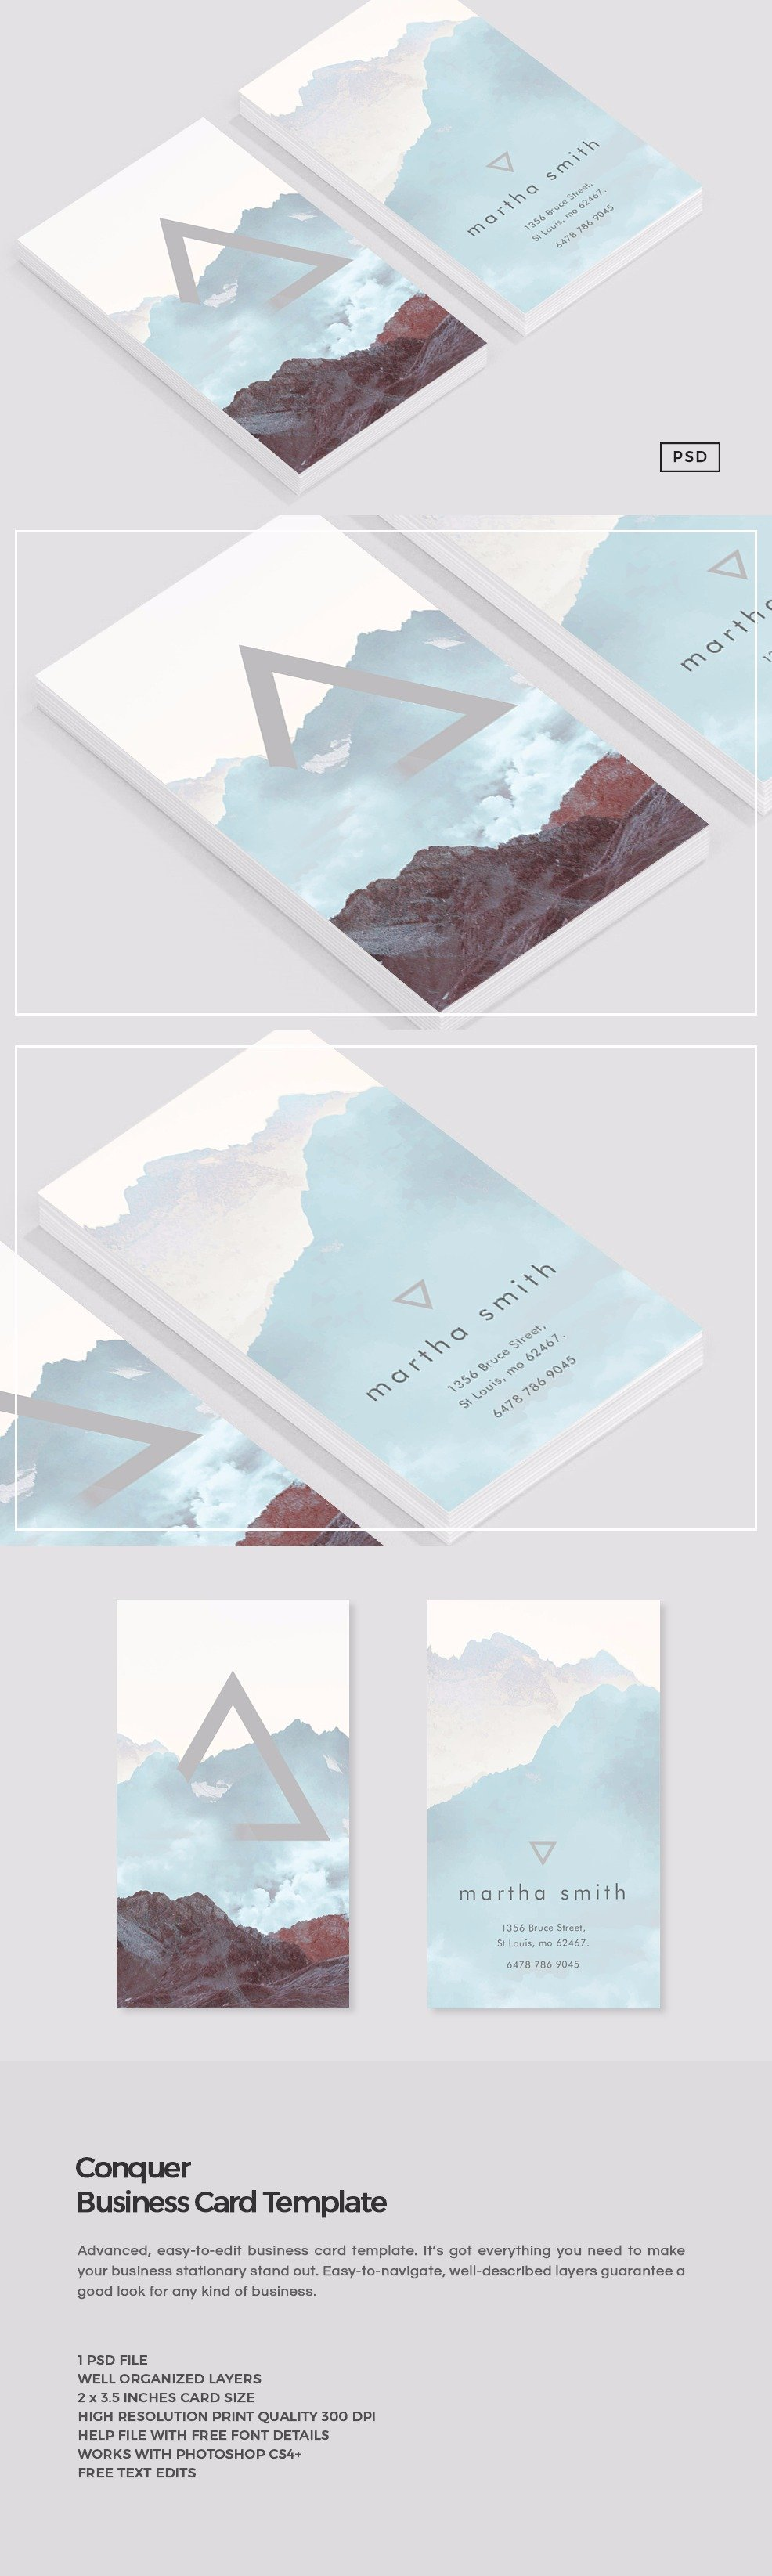 Conquer Business Card Template ~ Business Card Templates ...